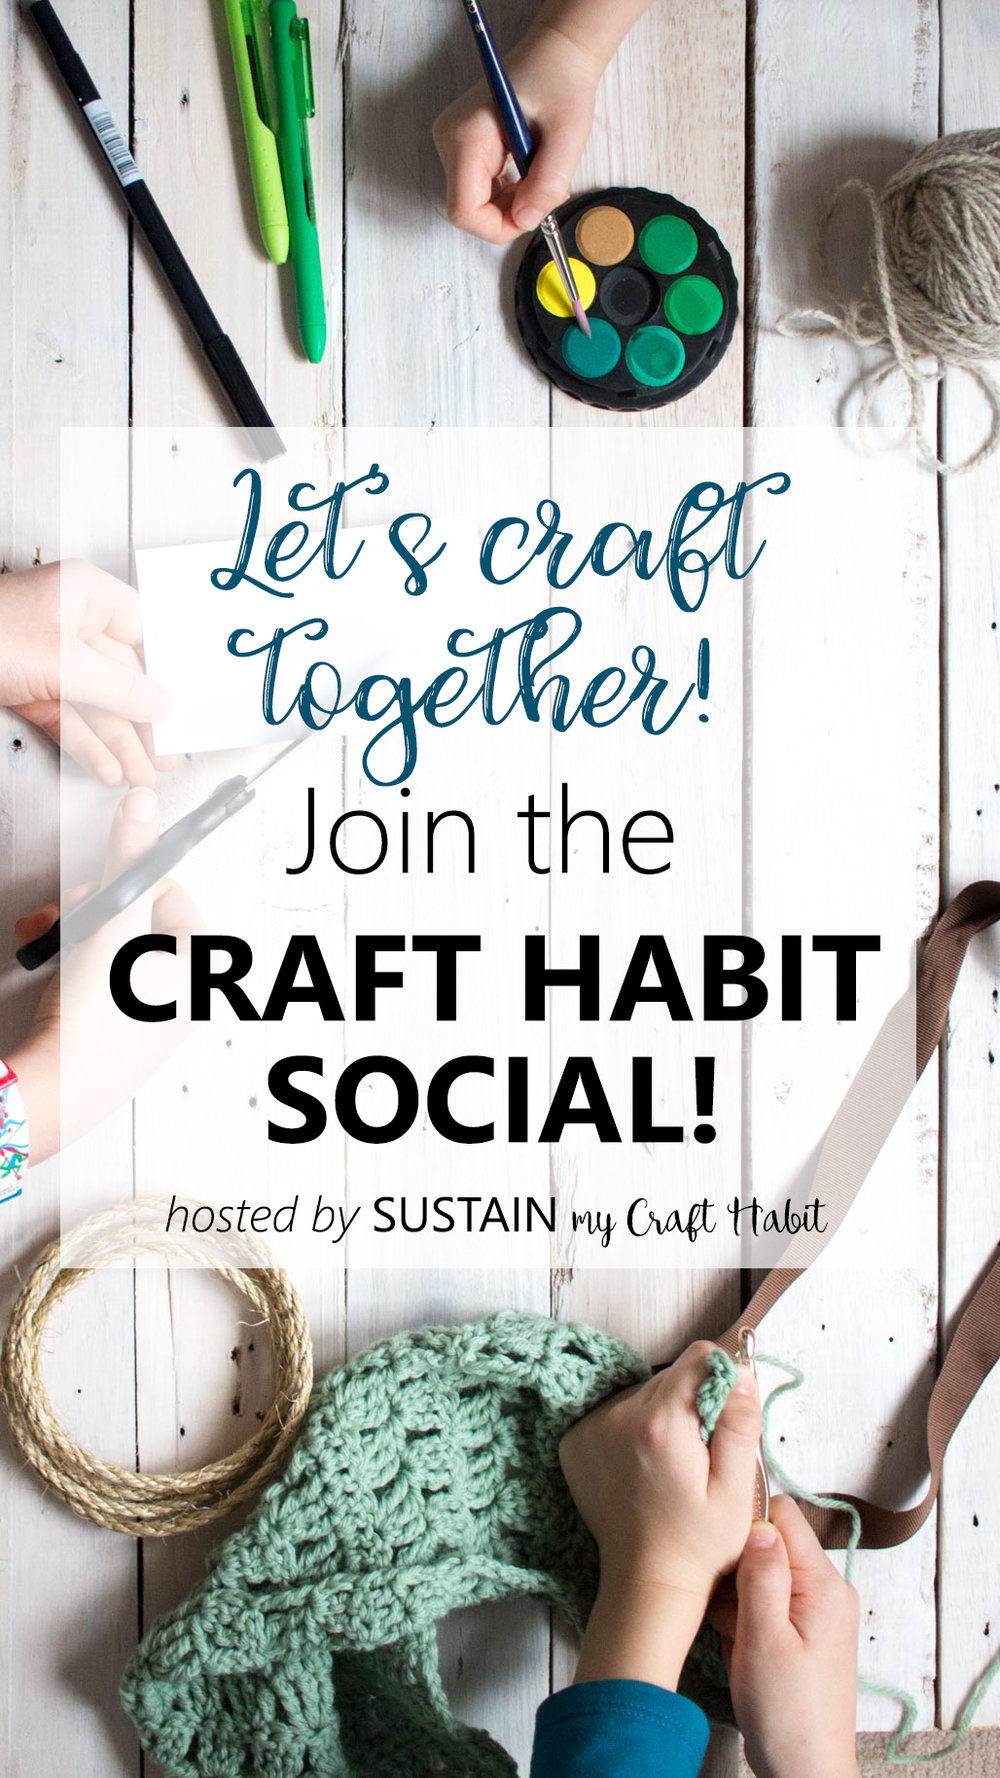 A group for craft addicts. Join and share with the Craft Habit Social hosted by Sustain My Craft Habit.